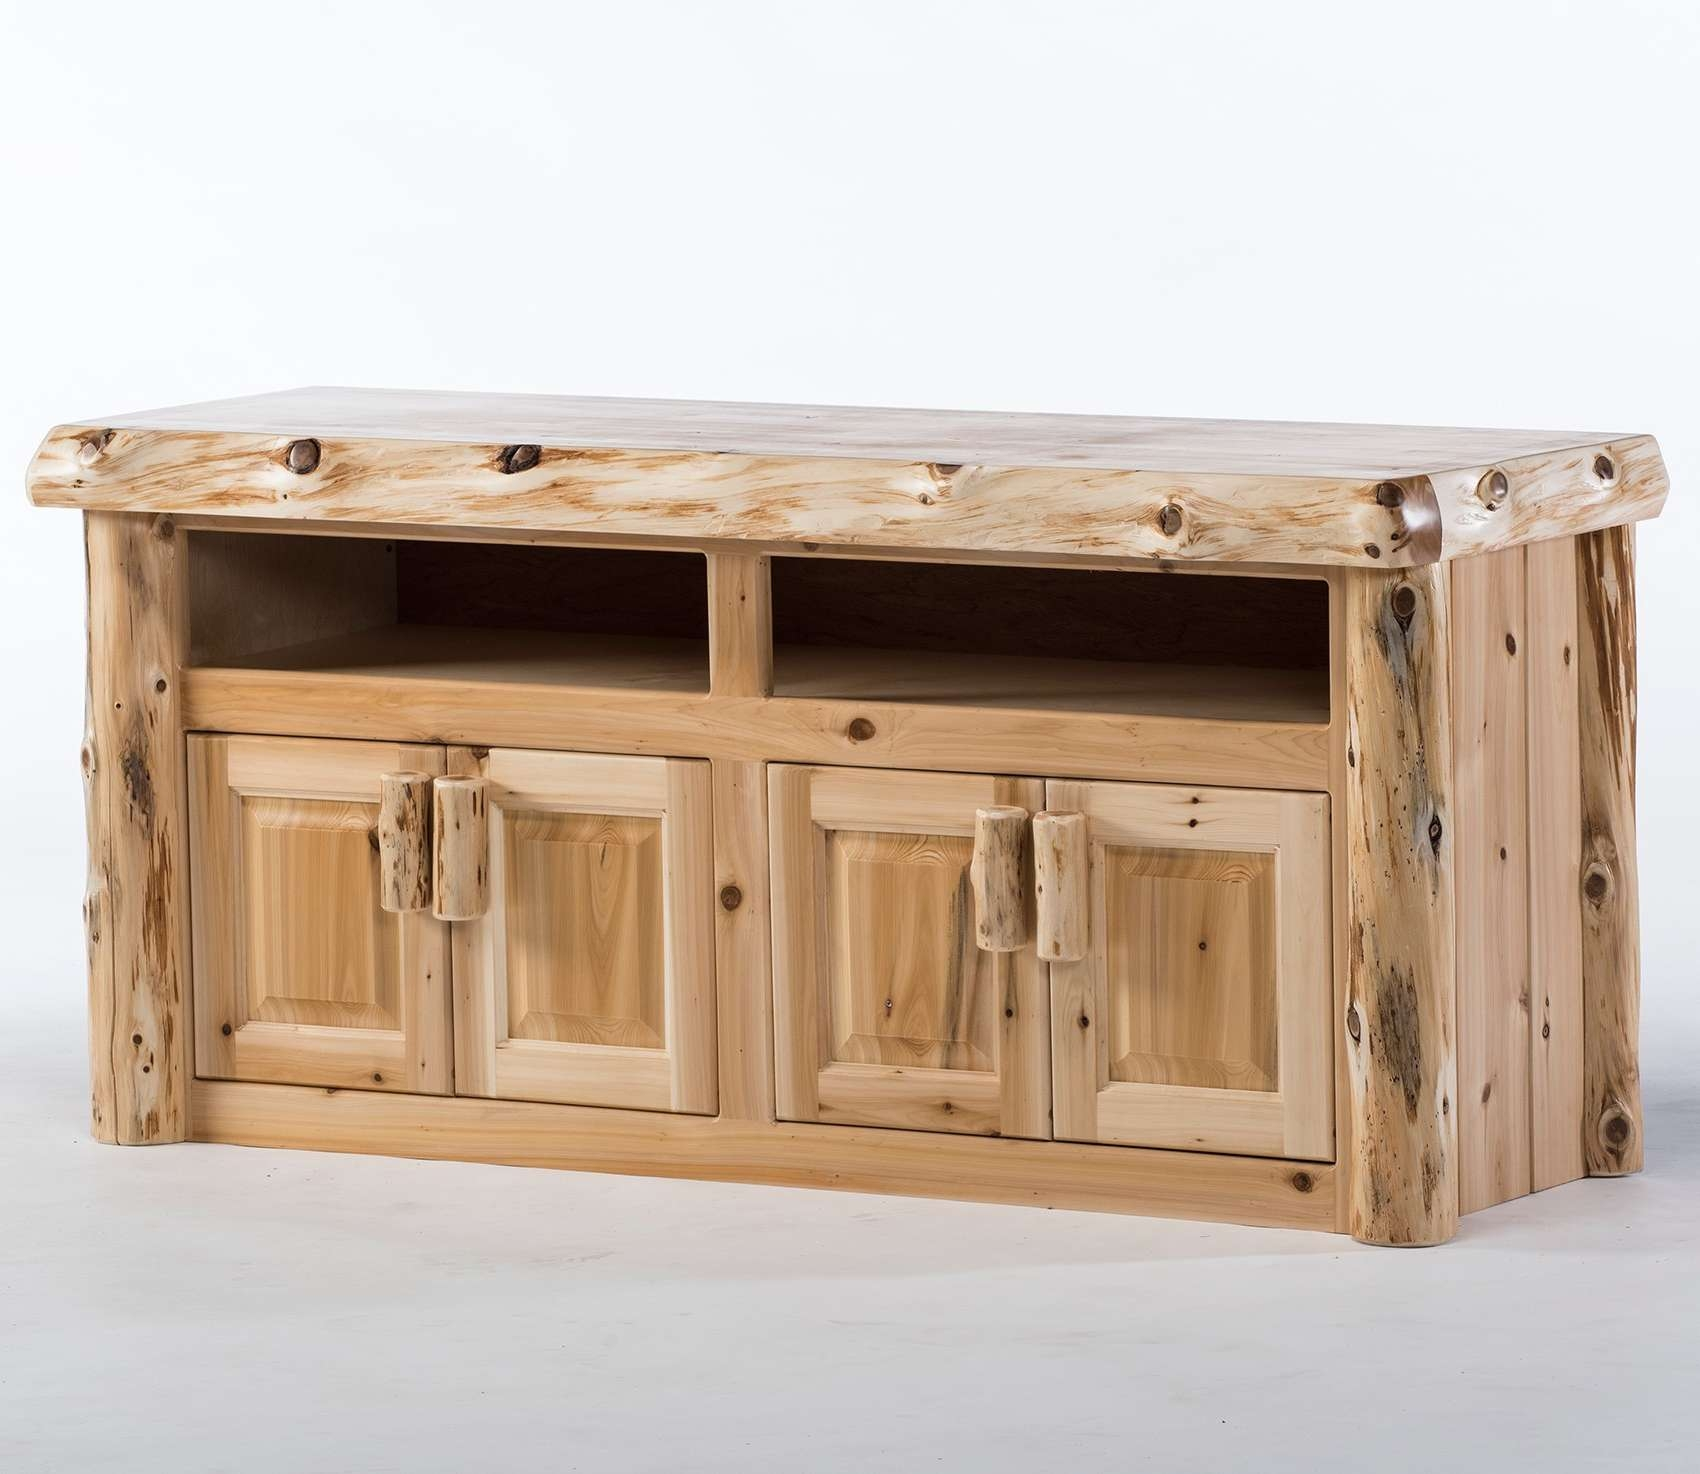 Reclaimed Wood Tv Stands & Rustic Tv Stands: Log Tv Stand & Rustic With Regard To Rustic Tv Stands (View 12 of 20)